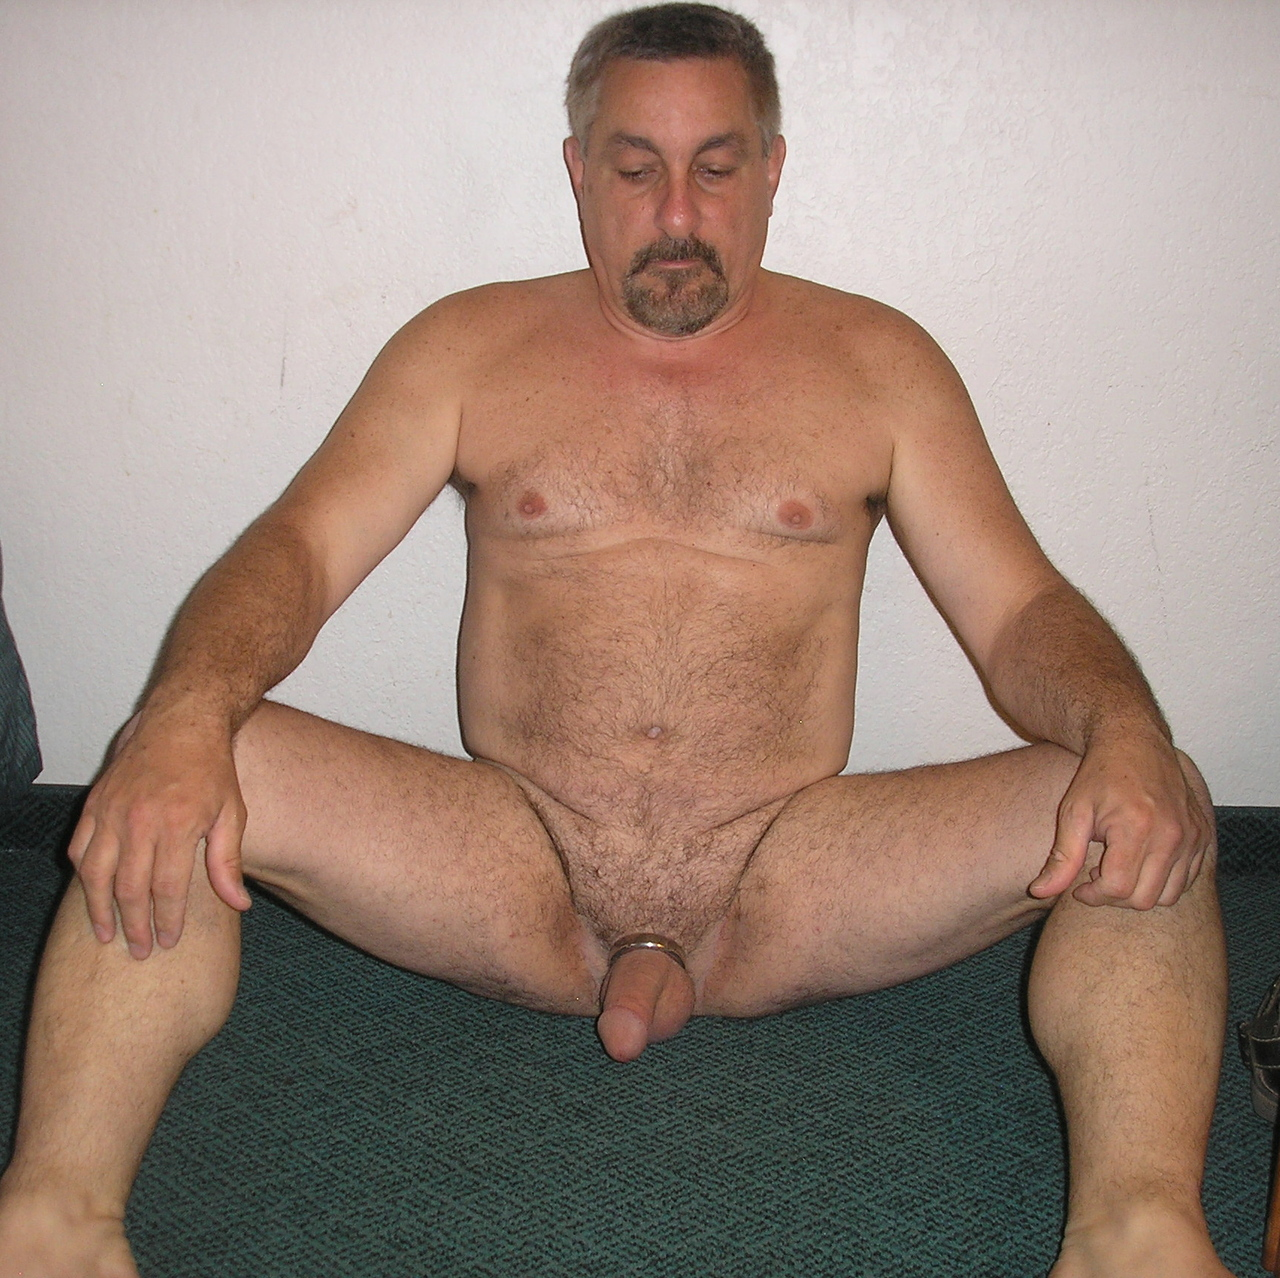 hairy men gay pics free bears - hairy dads & co